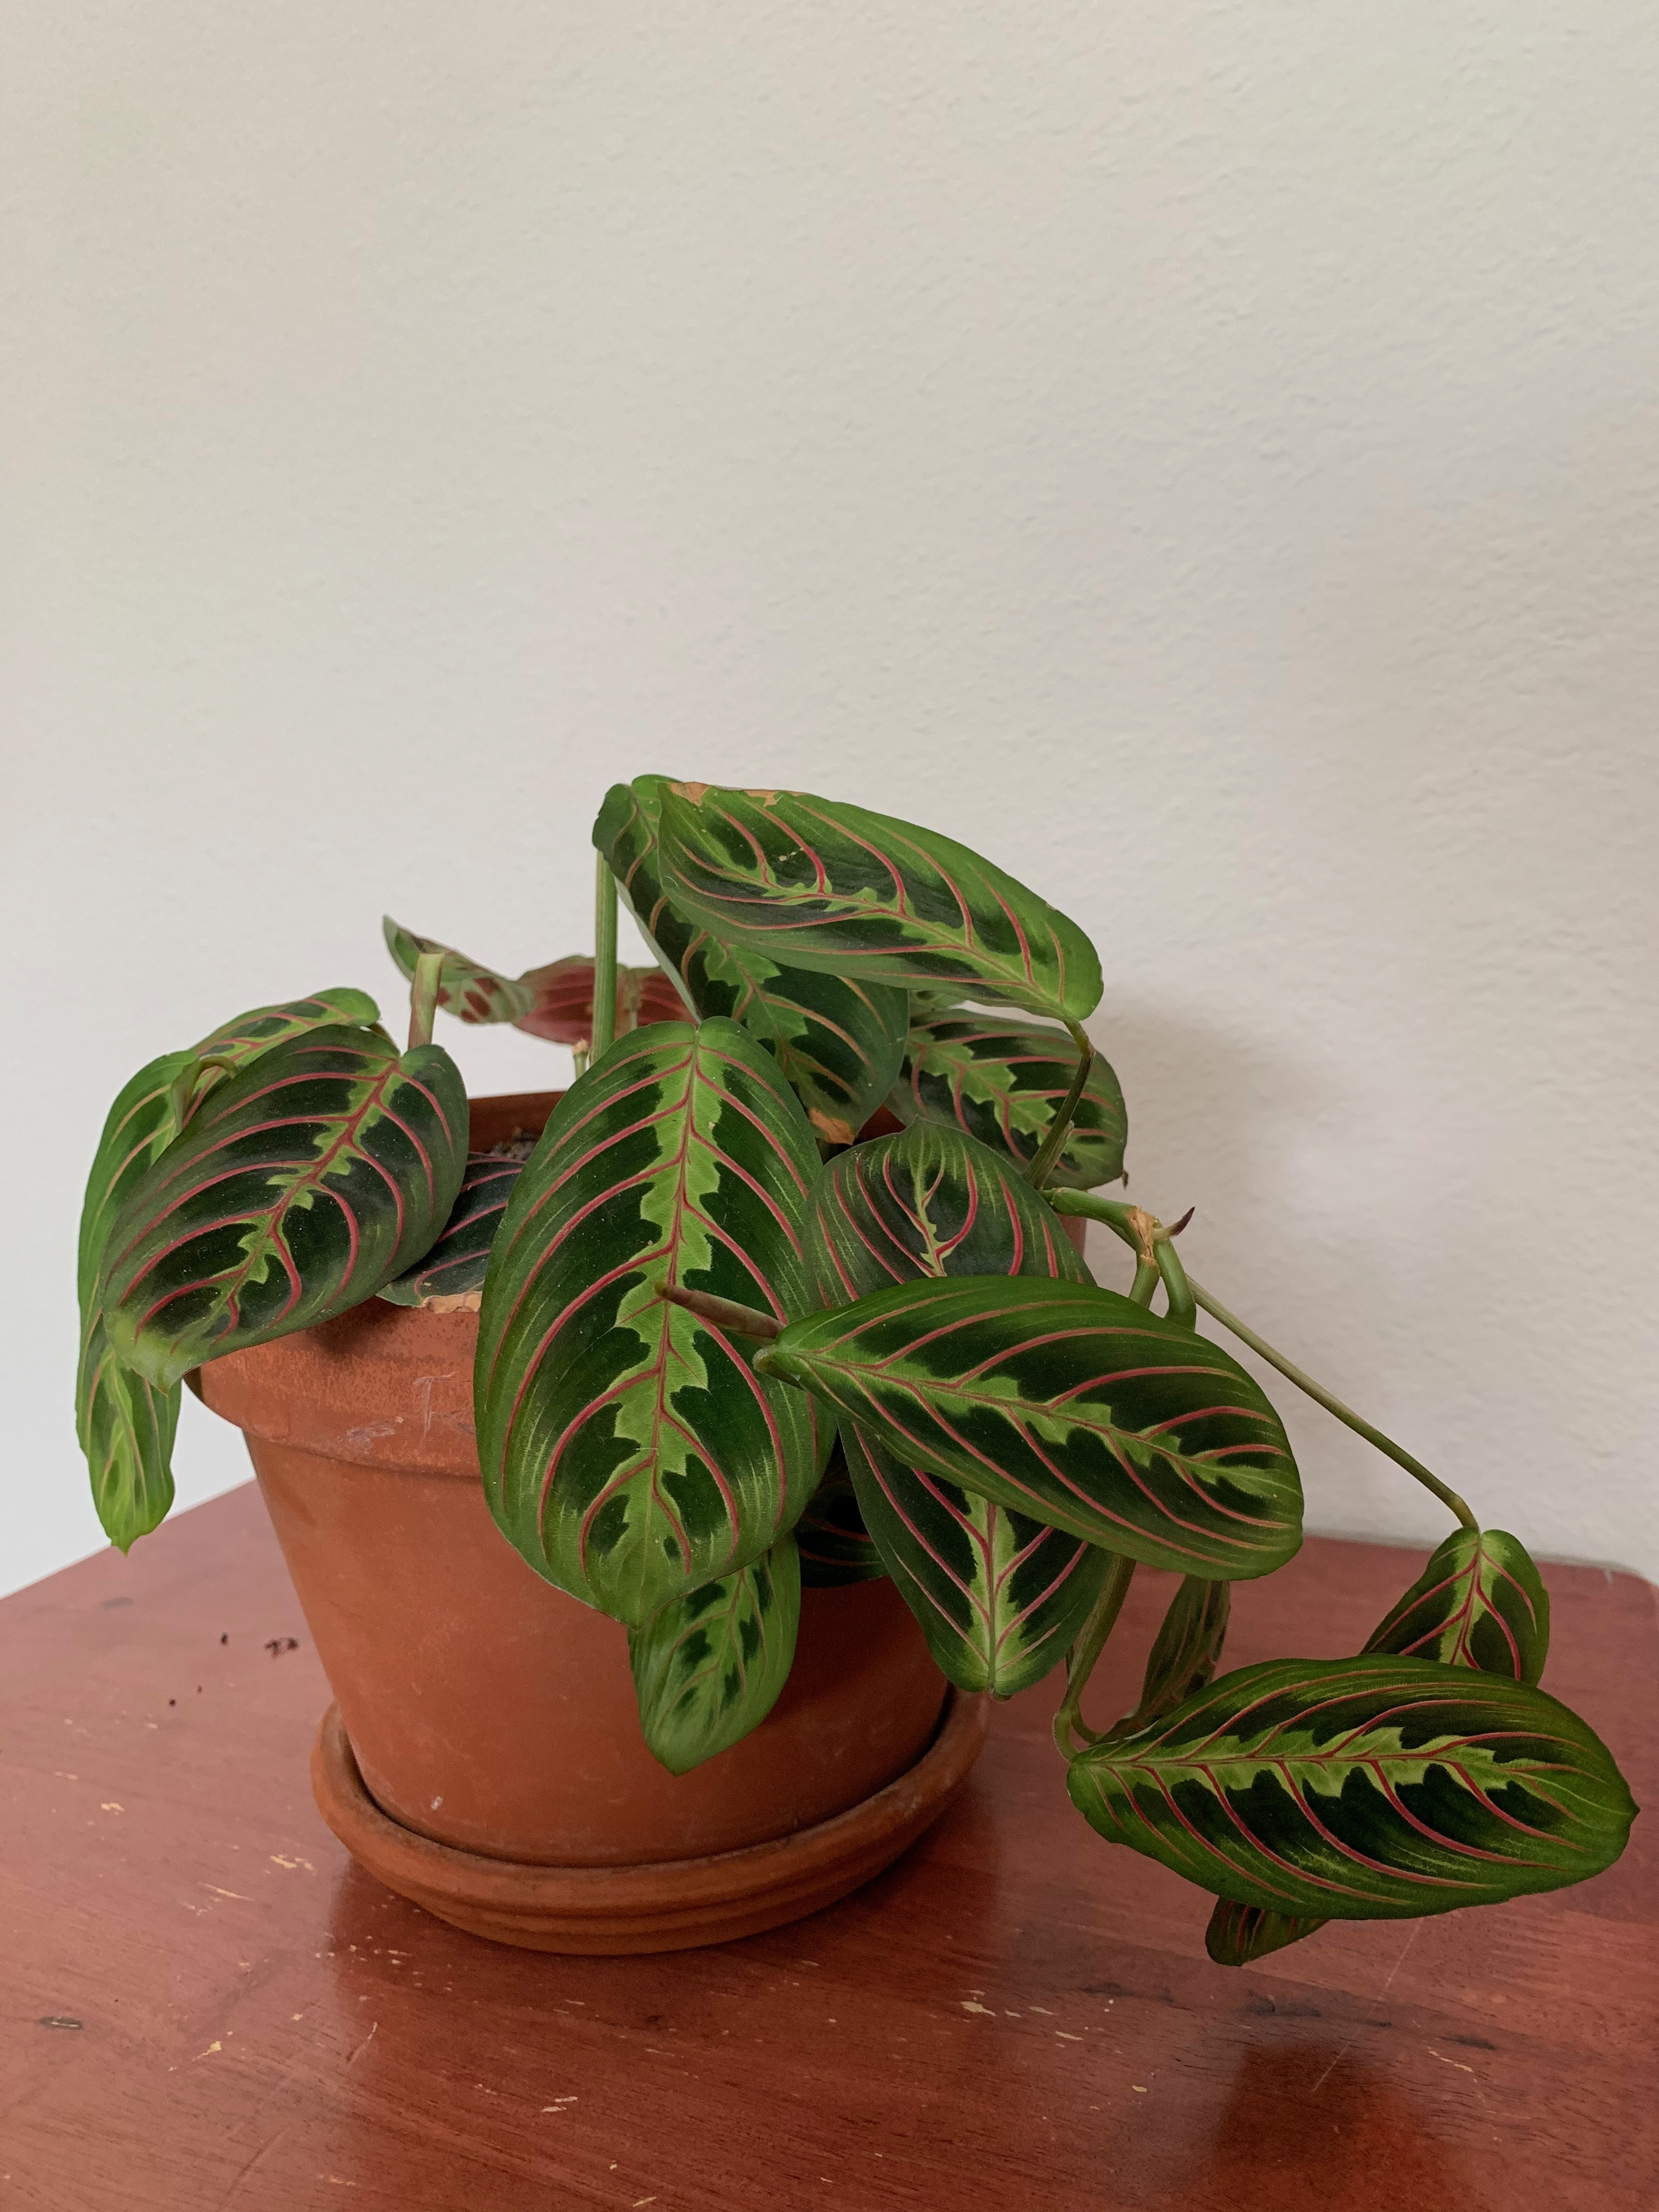 This is a prayer plant